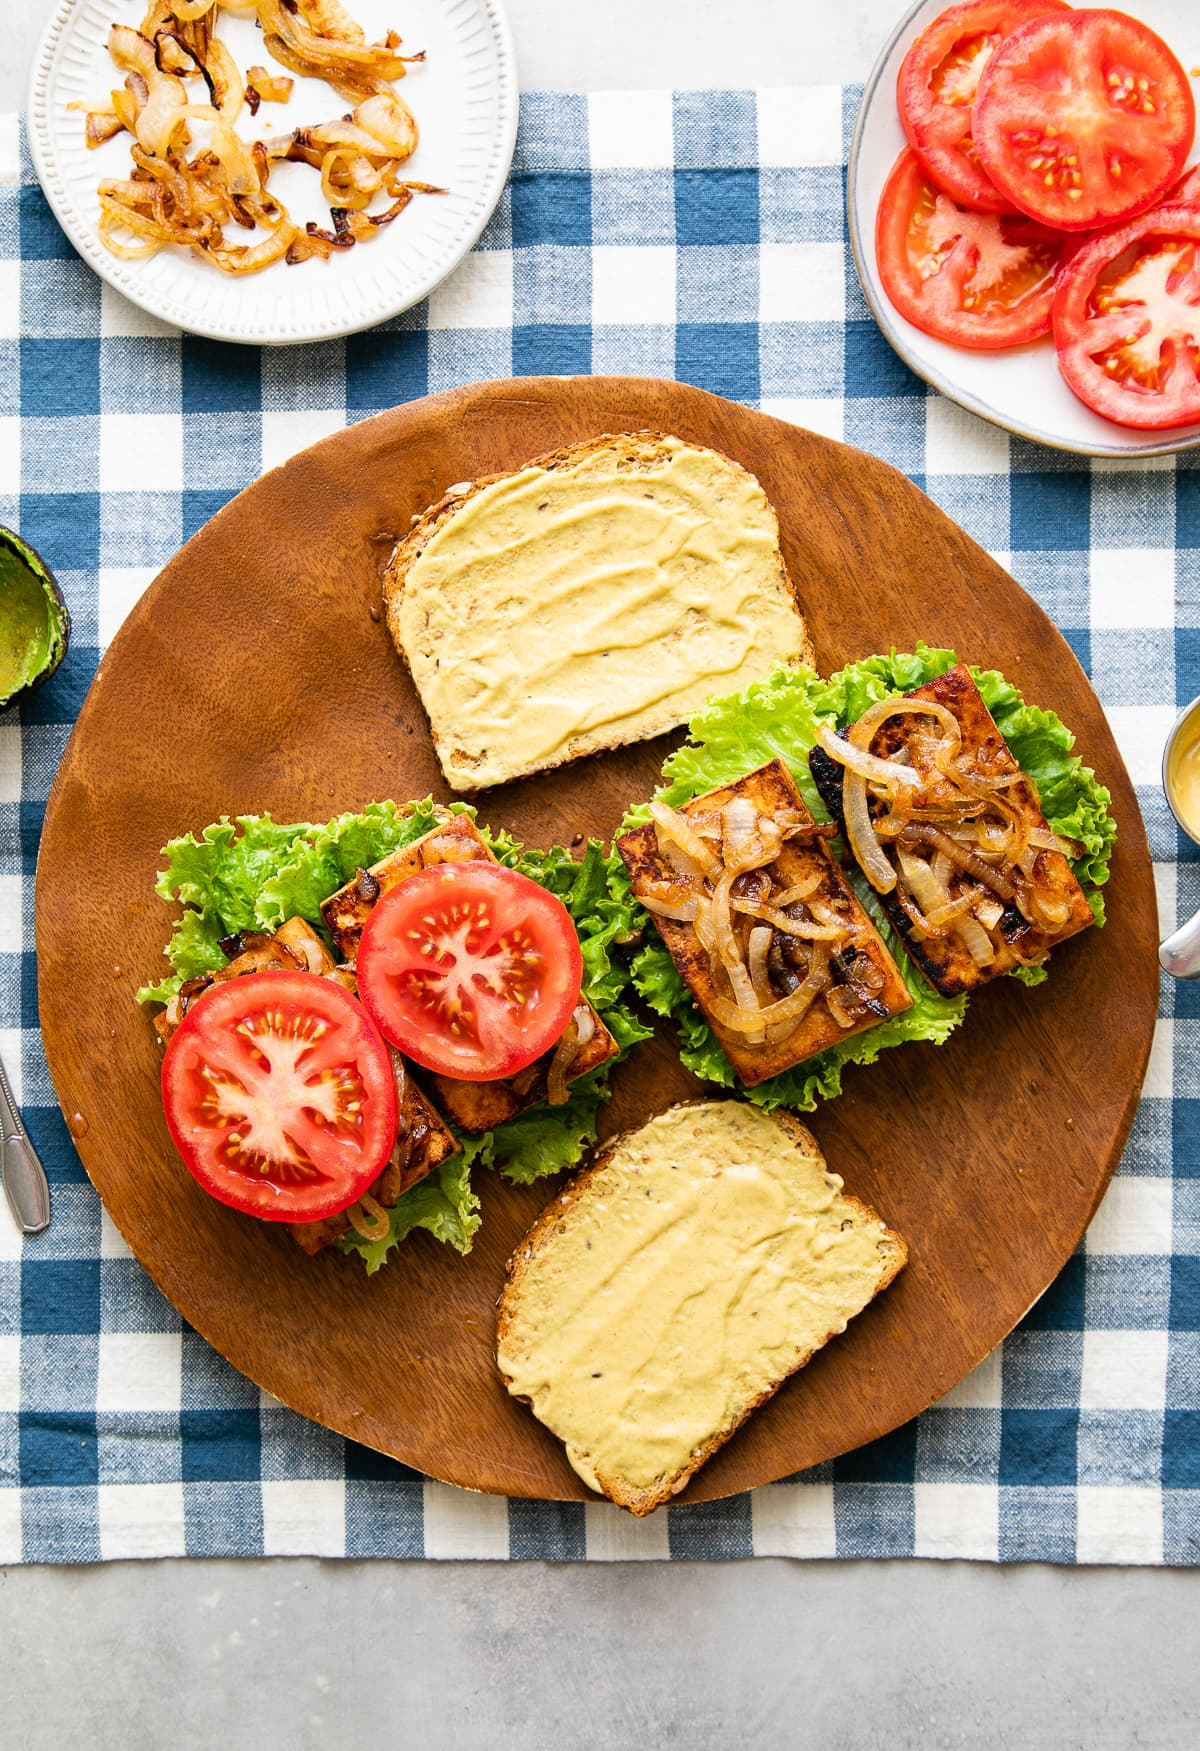 top down view showing the process of layering tofu sandwich with ingredients.